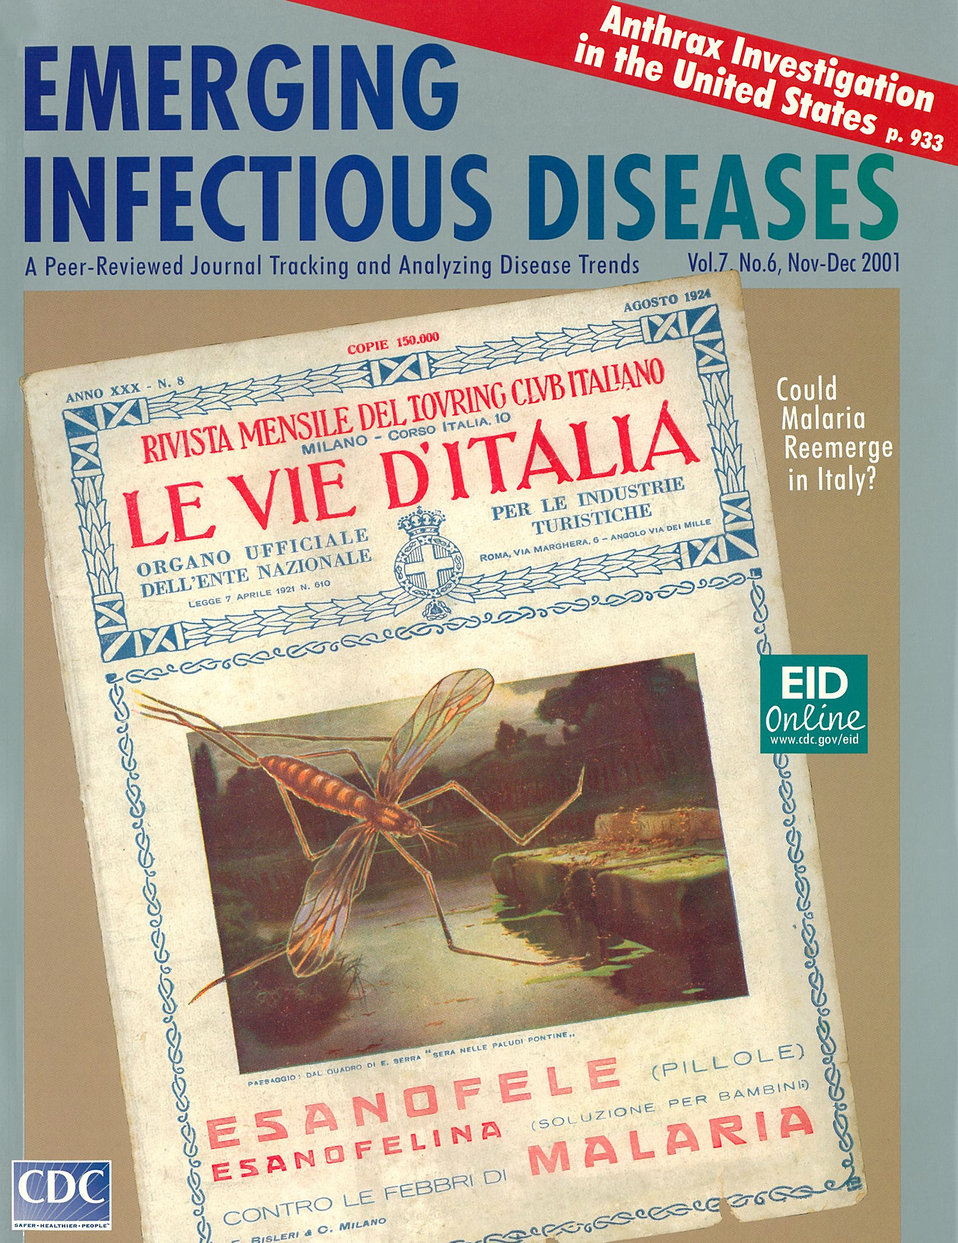 Emerging Infectious Diseases (EID) cover artwork for Volume 7, Number 6, November-December 2001 issue.